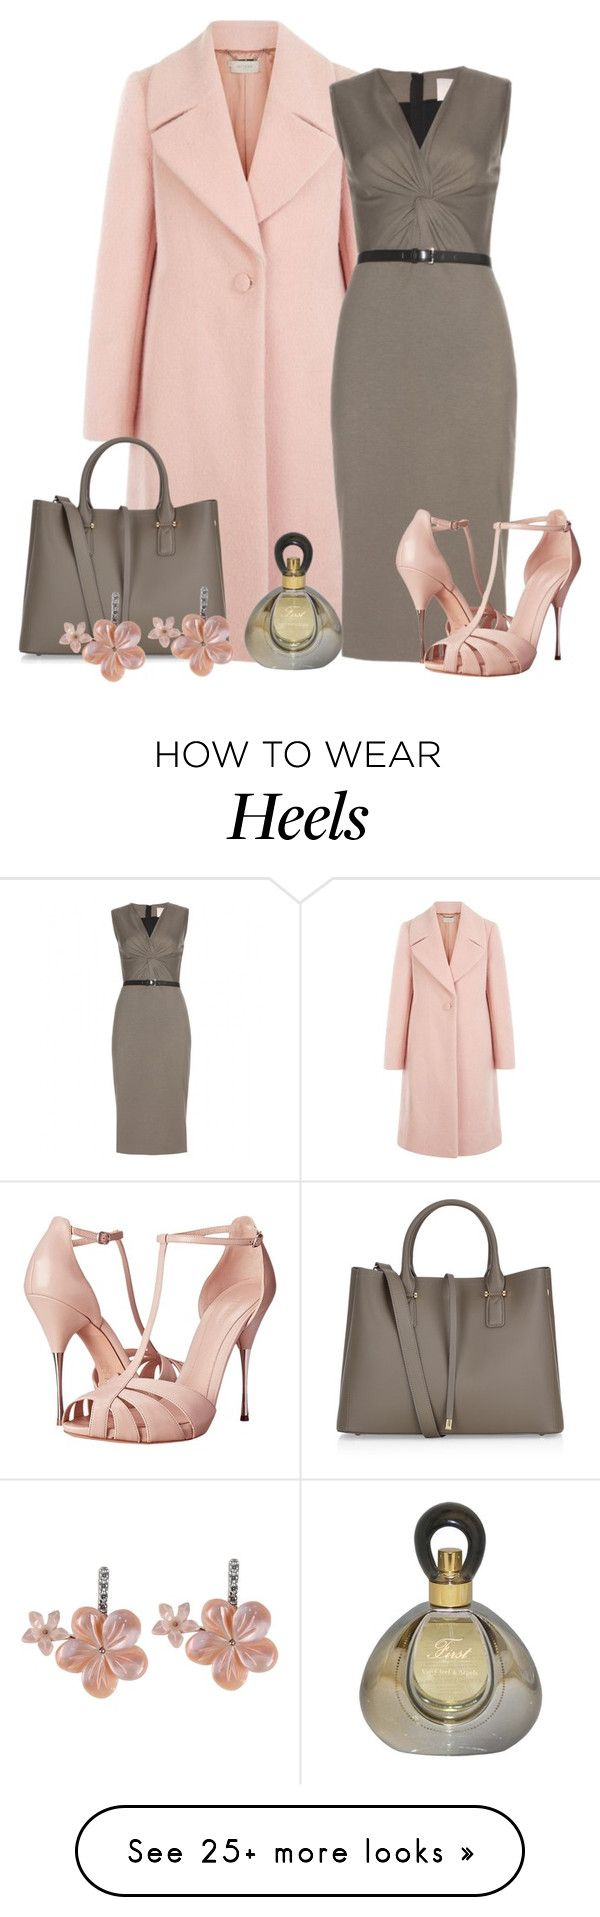 """Stretch Jersey Dress With Coat"" by malathik on Polyvore featuring Hobbs, Accessorize, Jason Wu, First People First, Alexander McQueen, Van Cleef & Arpels, women's clothing, women, female and woman"